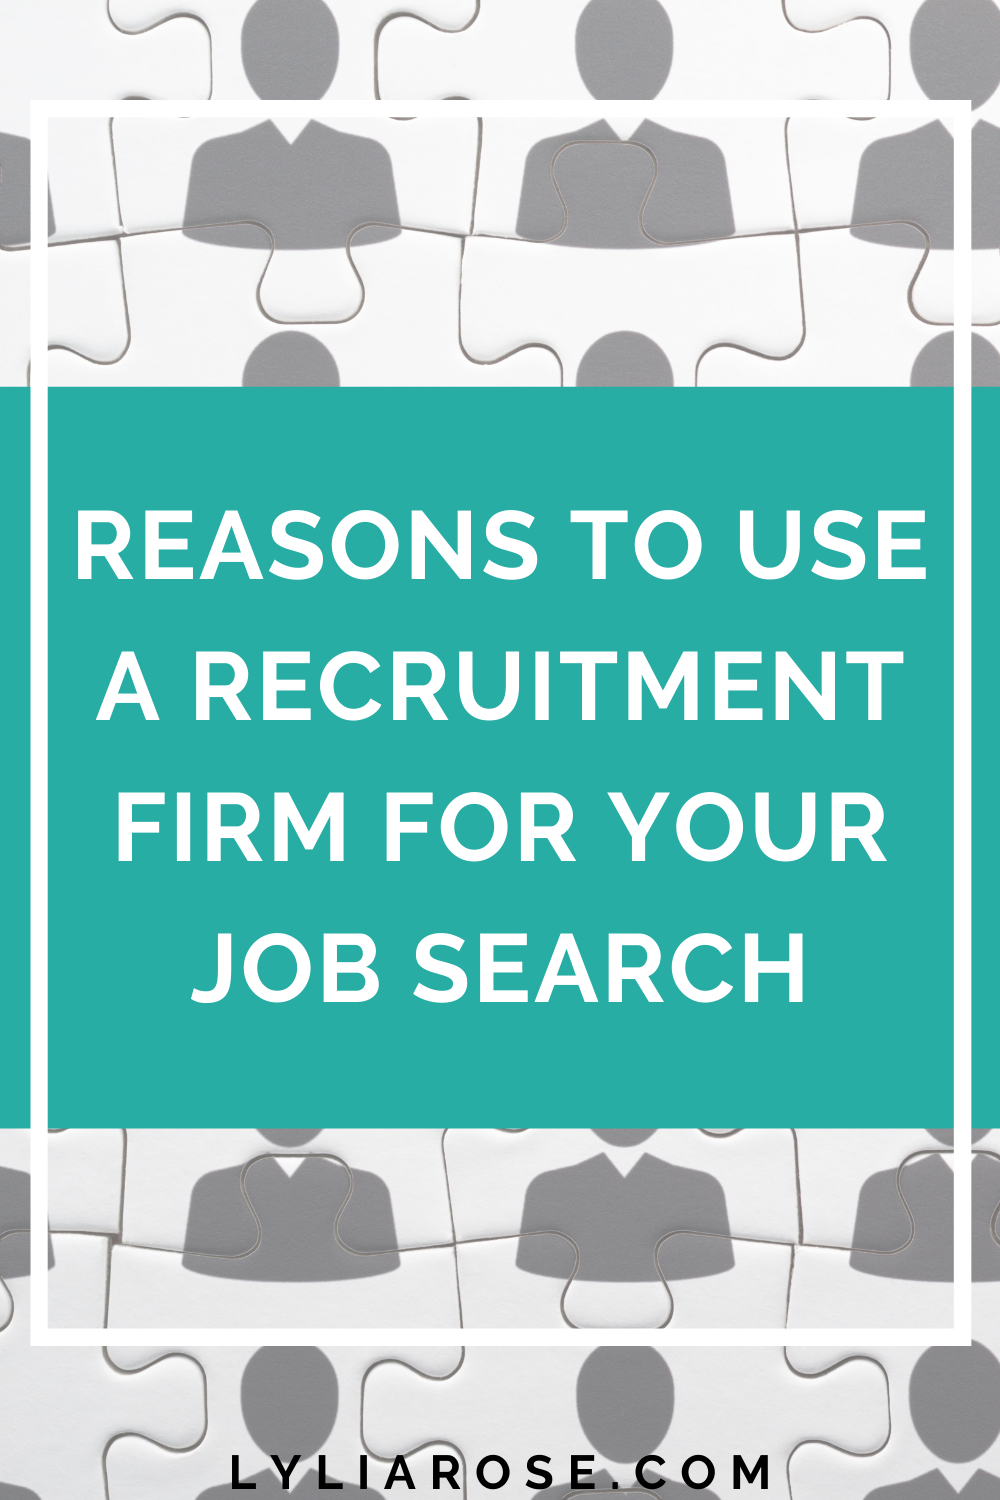 Reasons to use a recruitment firm for your job search